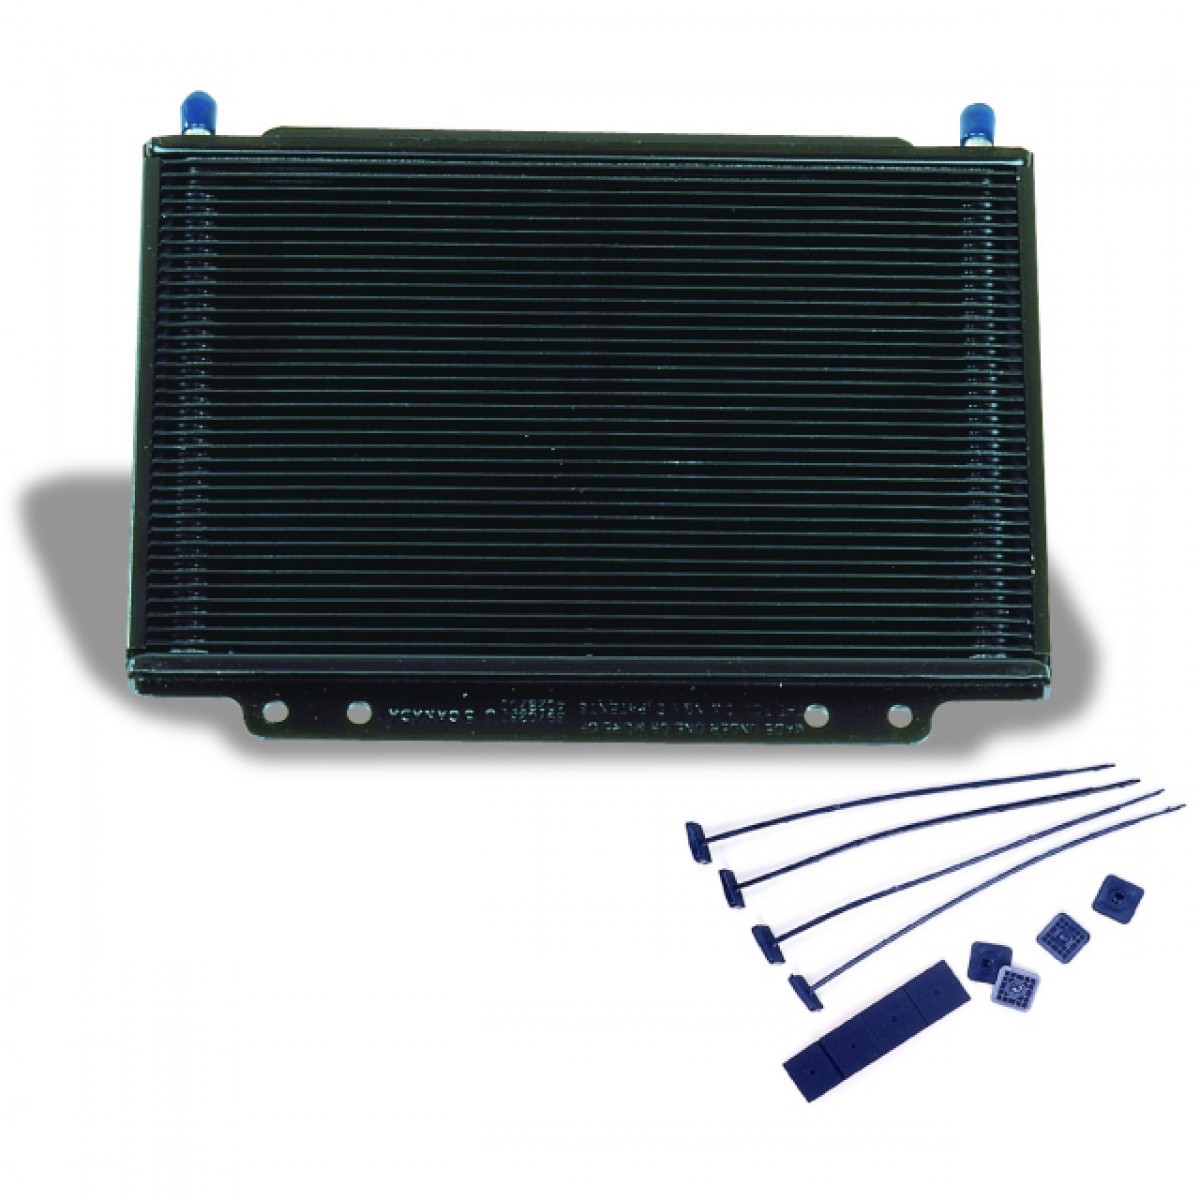 ford excursion oil cooler diagram  ford  free engine image for user manual download 2009 Chevy Impala Fuse Box Diagram 2006 Chevy Impala Fuse Box Location